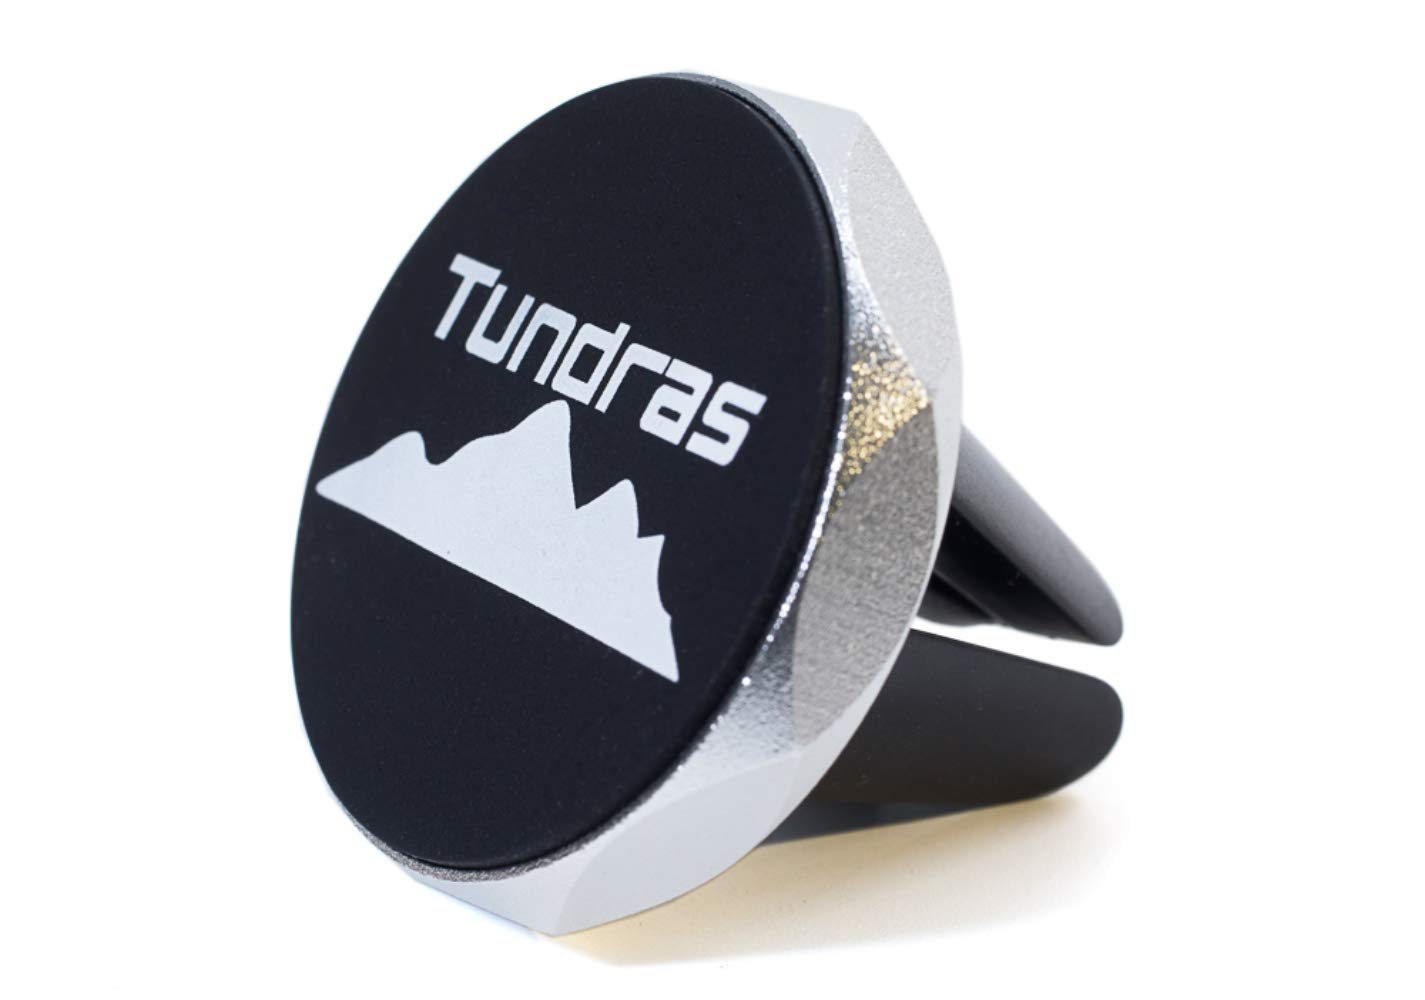 Tundras Universal Magnetic Phone Car Mount, easily clip on to car vent, compatible with iPhone, Android phones, Galaxy GPS & tablet devices. Car Phone Holder comes with TWO Magnets, Black with Silver